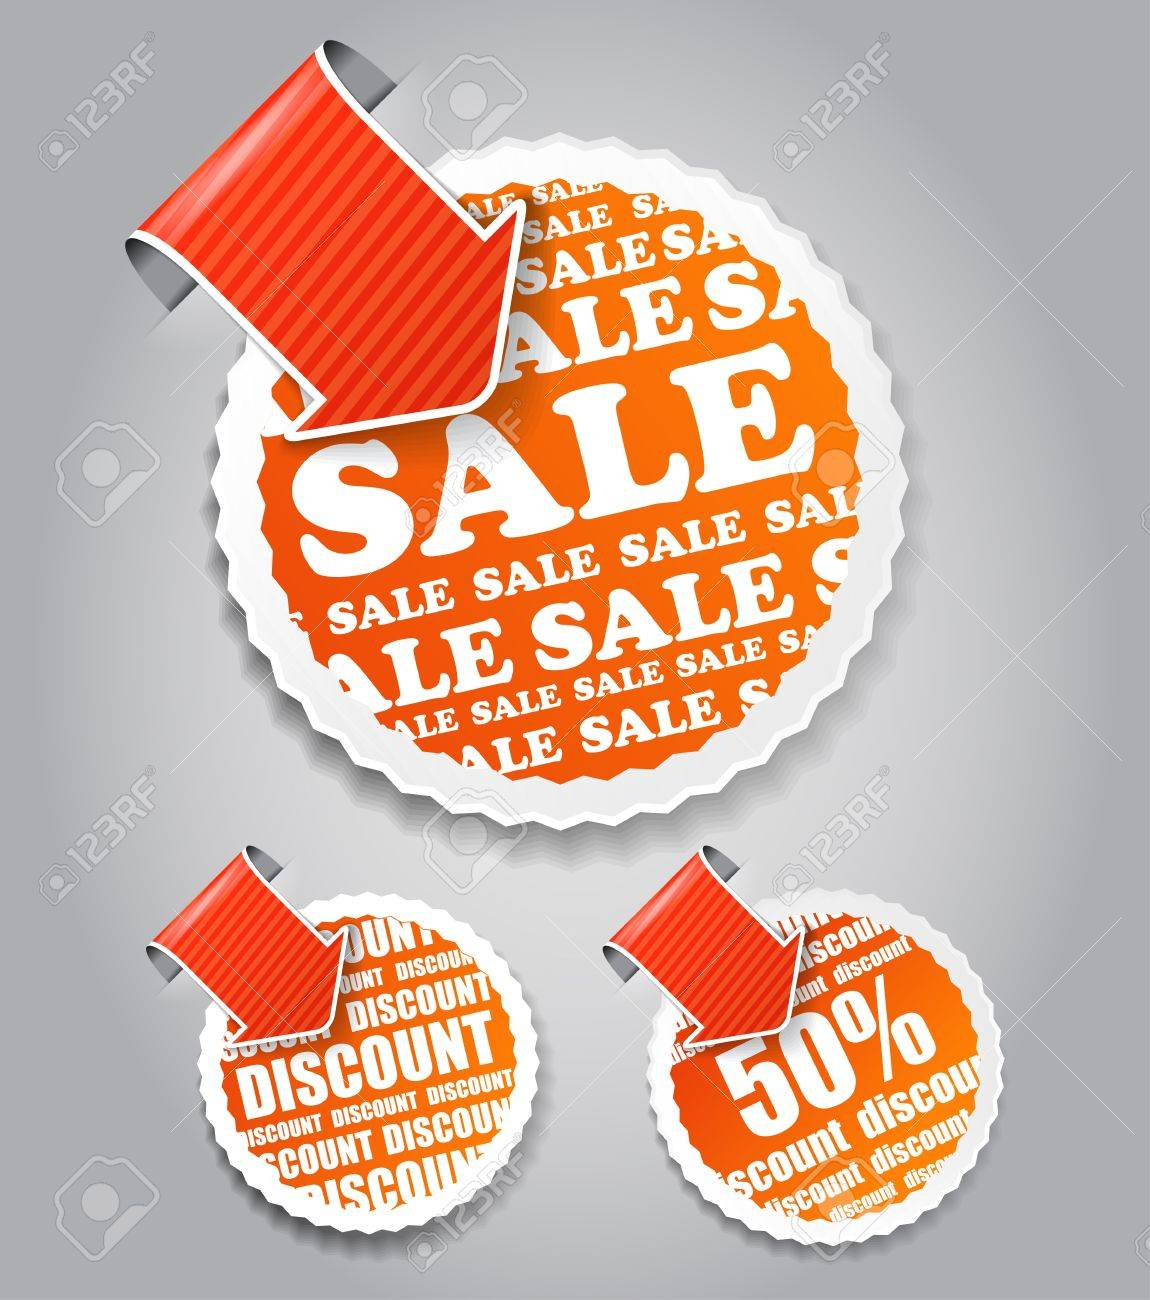 shopping labels: sale and discount Stock Vector - 11431026